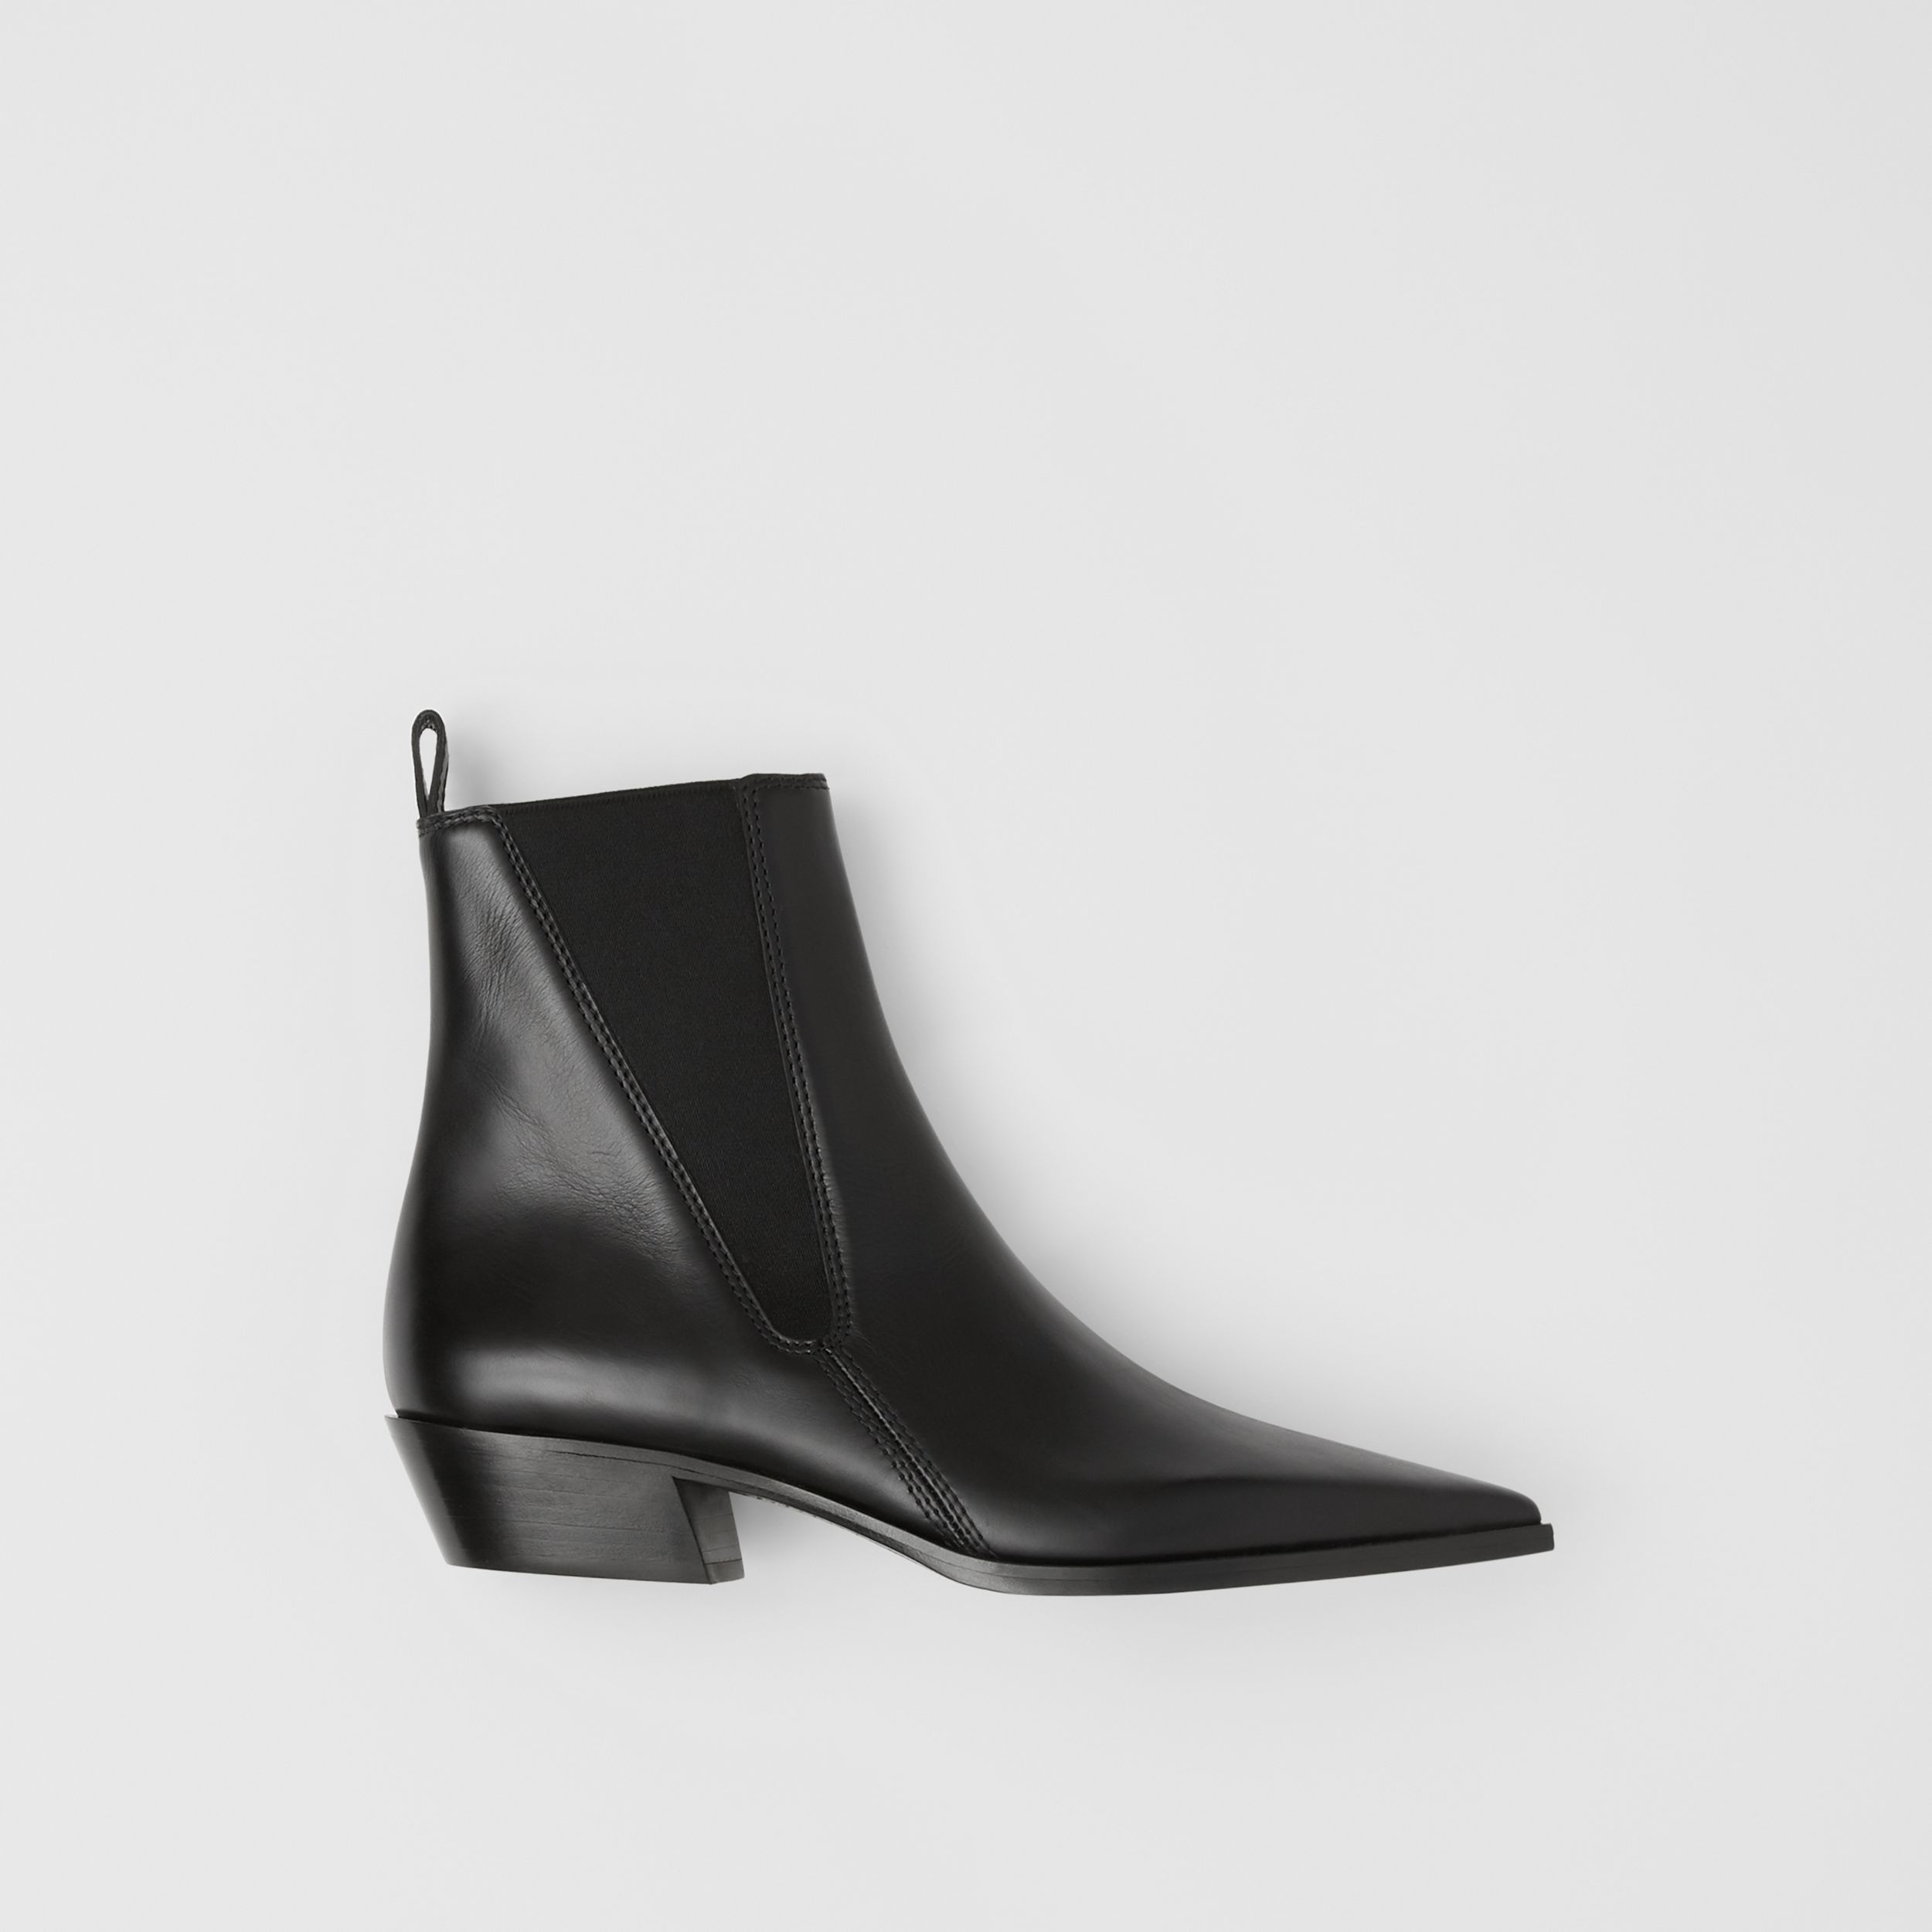 Leather Point-toe Chelsea Boots in Black - Women | Burberry - 1